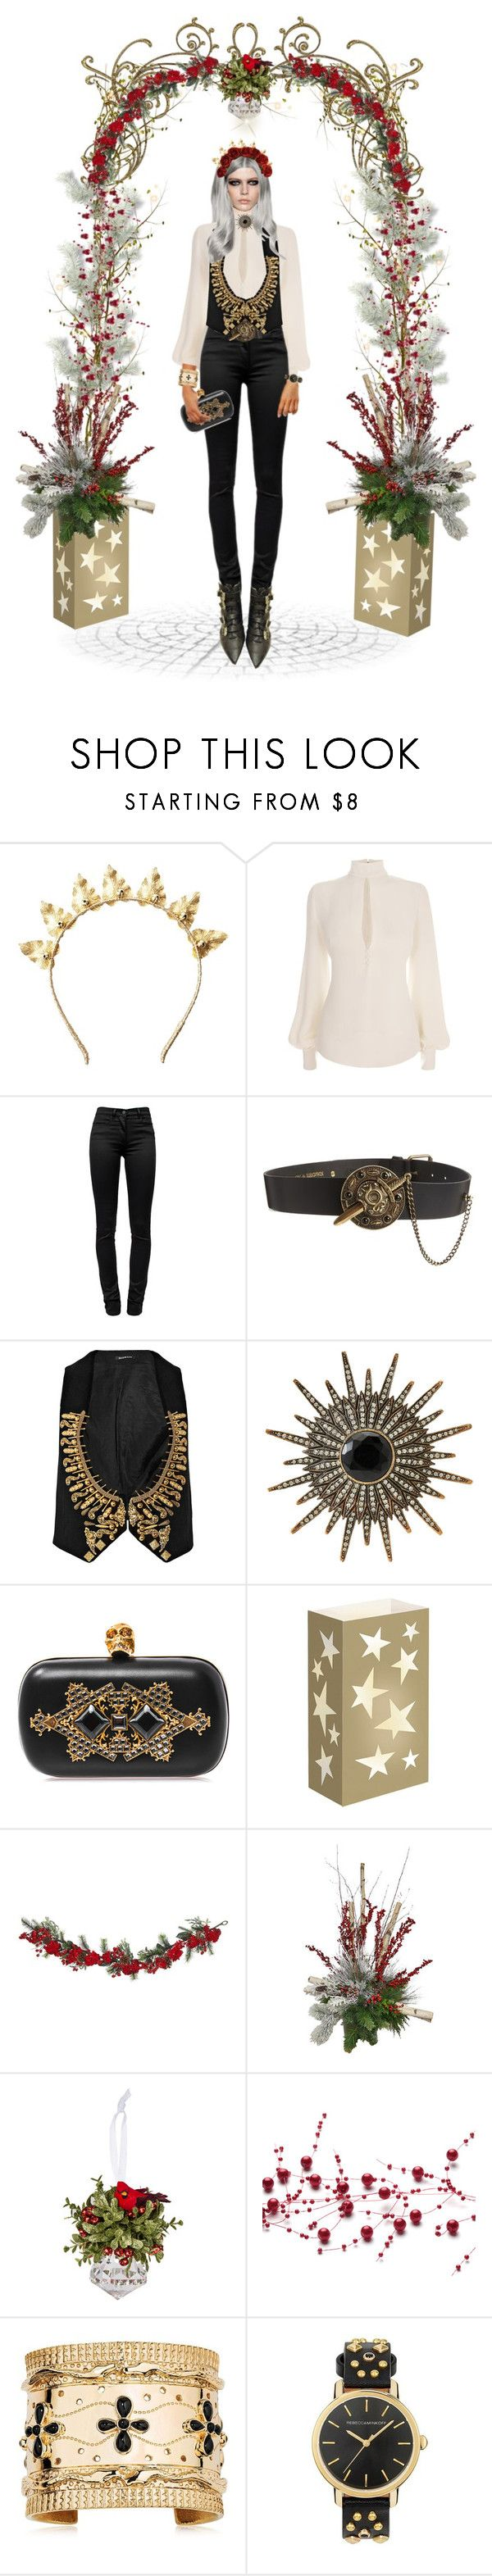 """""""I Don't Do """"Festive""""."""" by beneath-the-mystic-moon ❤ liked on Polyvore featuring Rock 'N Rose, Alexander McQueen, T By Alexander Wang, Black & Brown London, Balmain, Heidi Daus, LumaBase, Nearly Natural, Frontgate and Sullivans"""